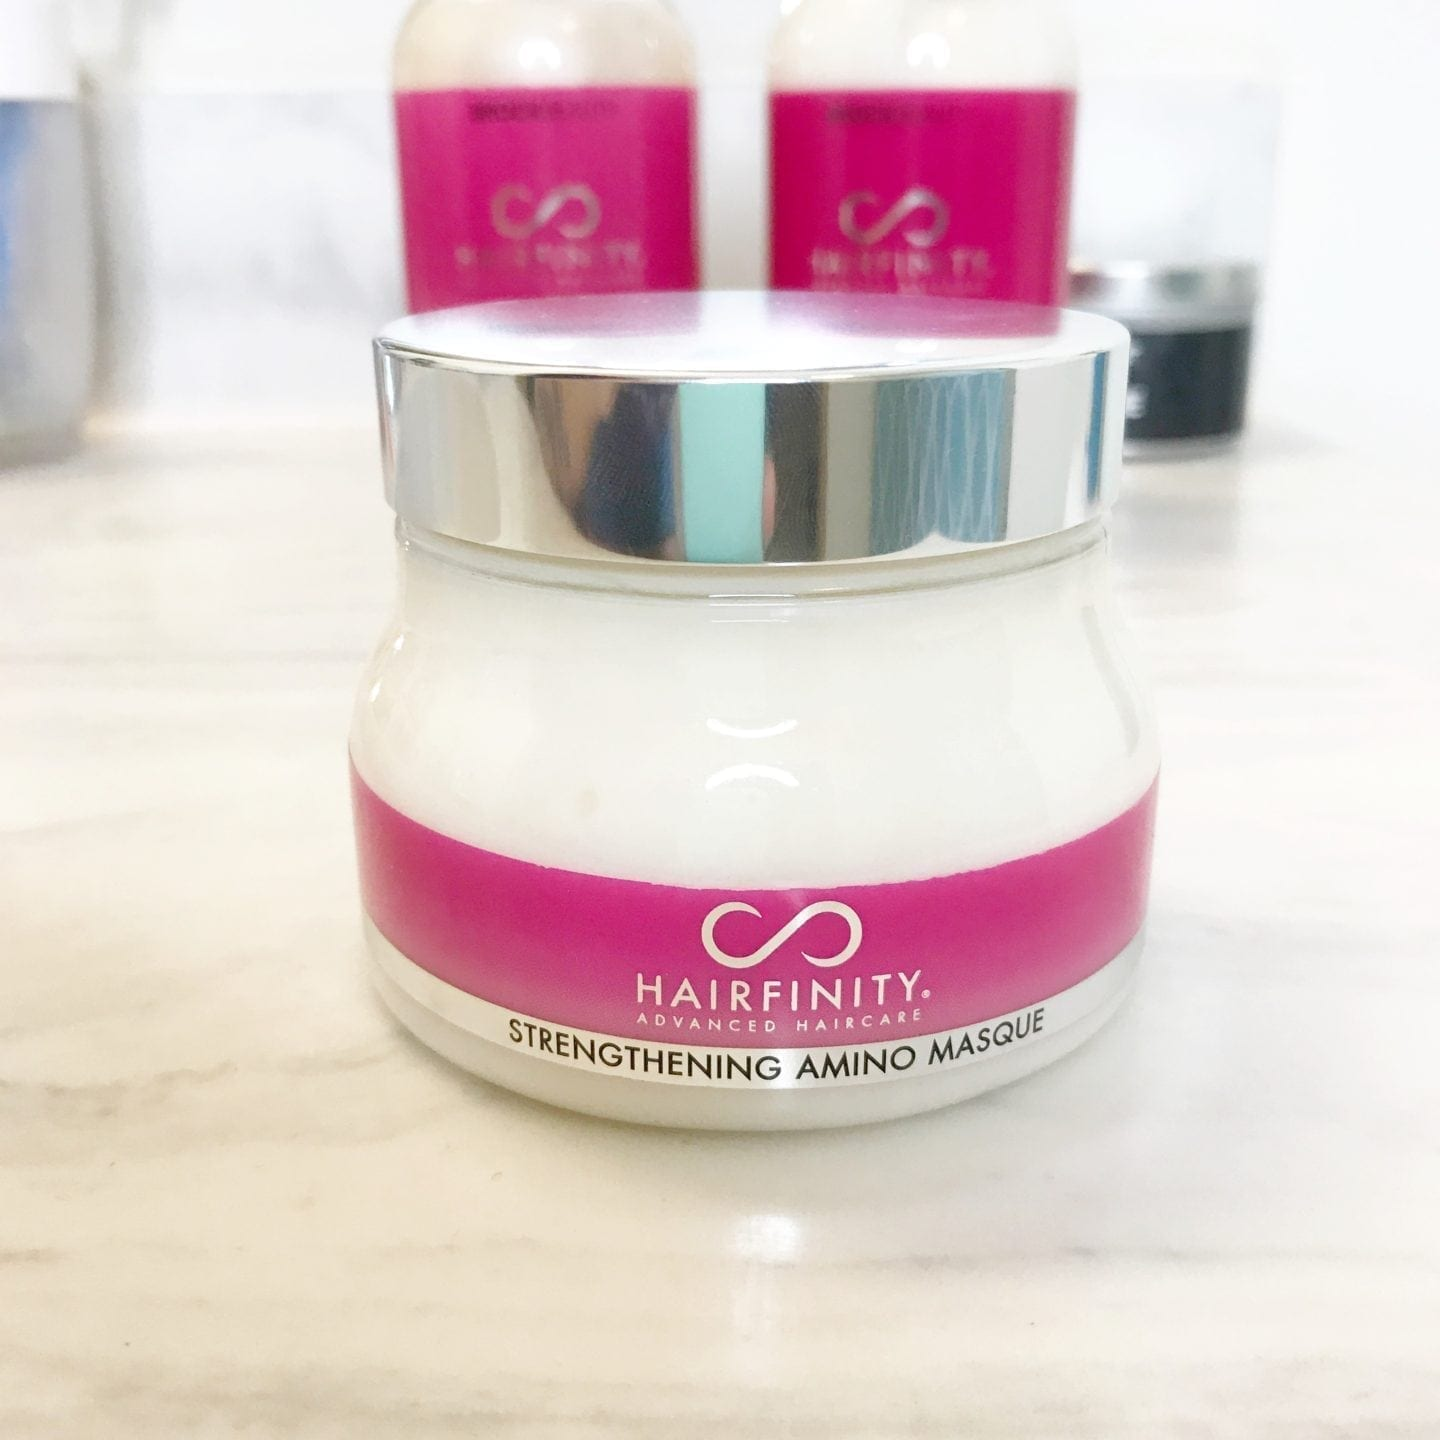 HAIRFINITY Review